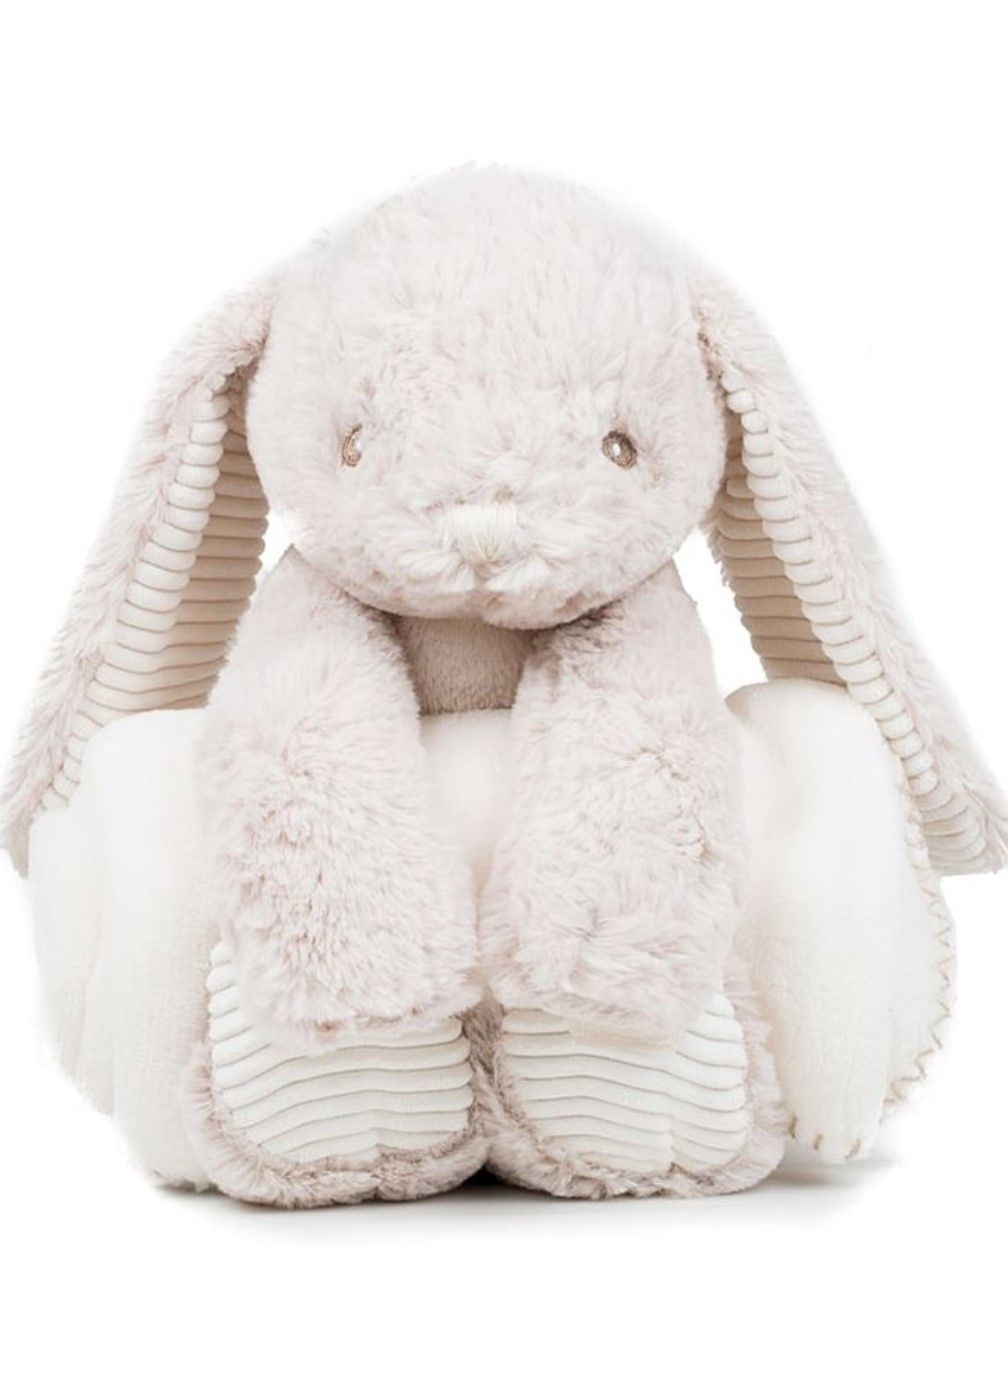 Personalised Embroidered Blanket and Bunny Rabbit Set